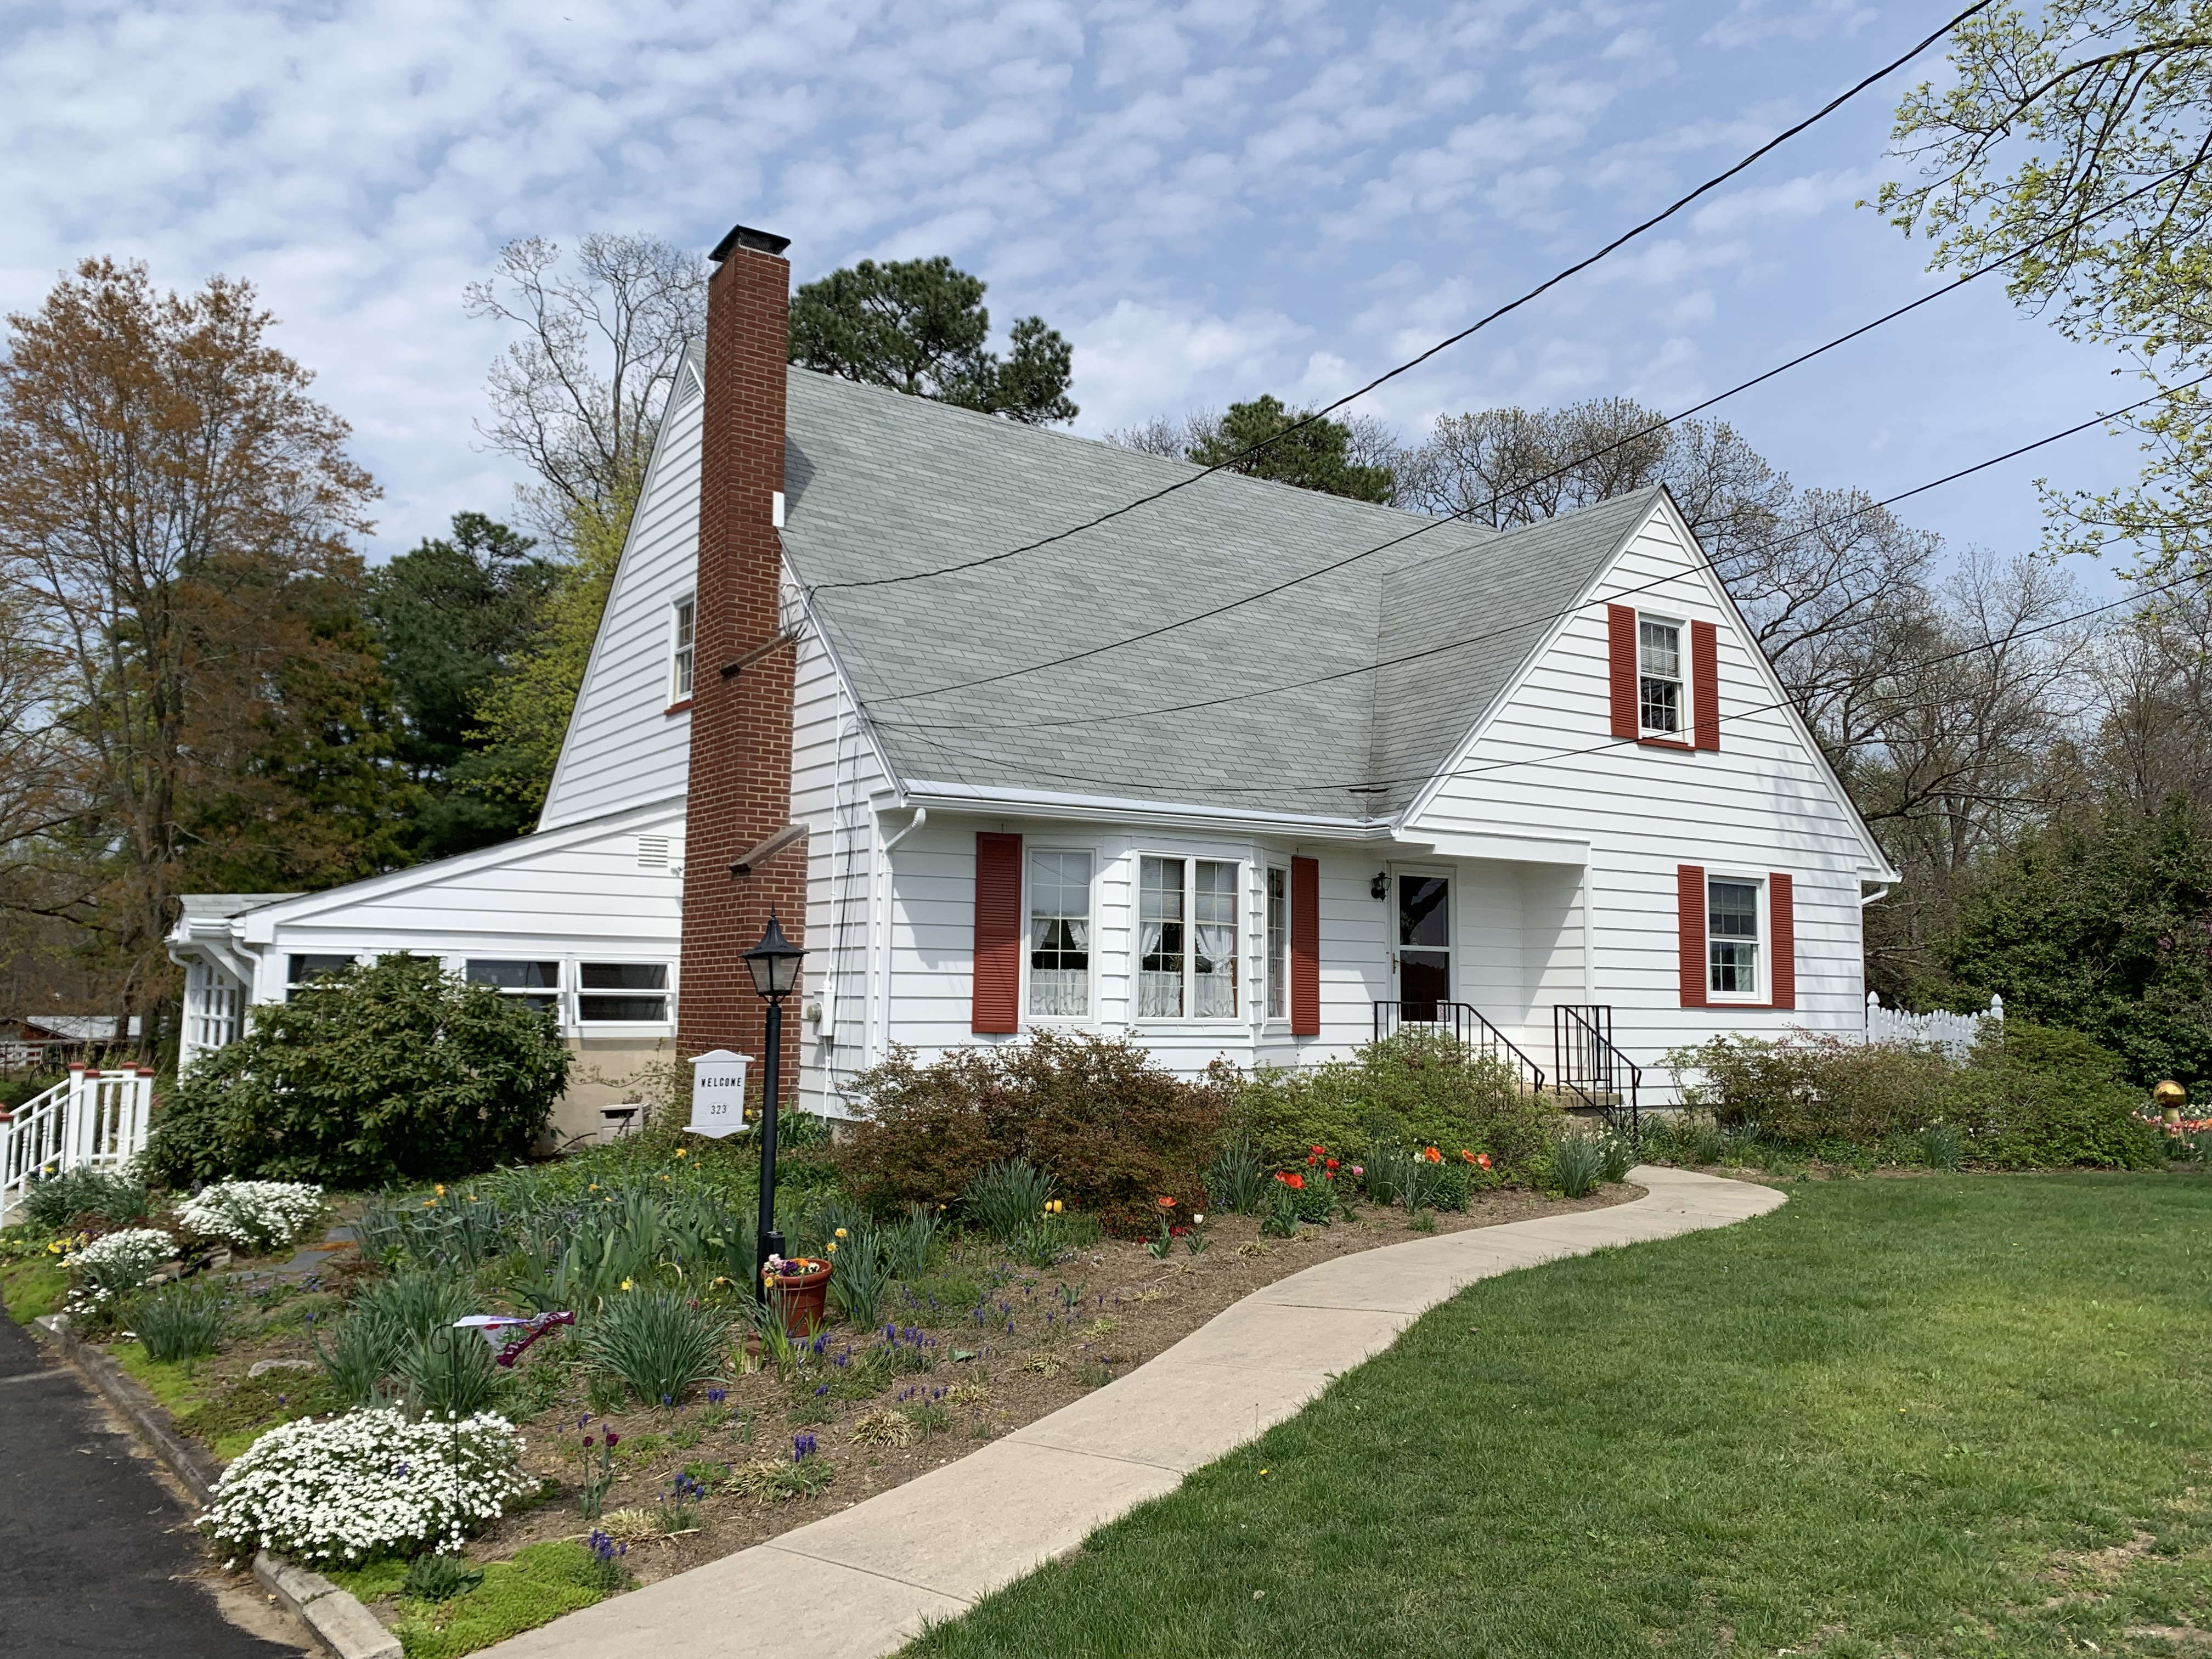 Exterior Painting for Home in Sewell, NJ